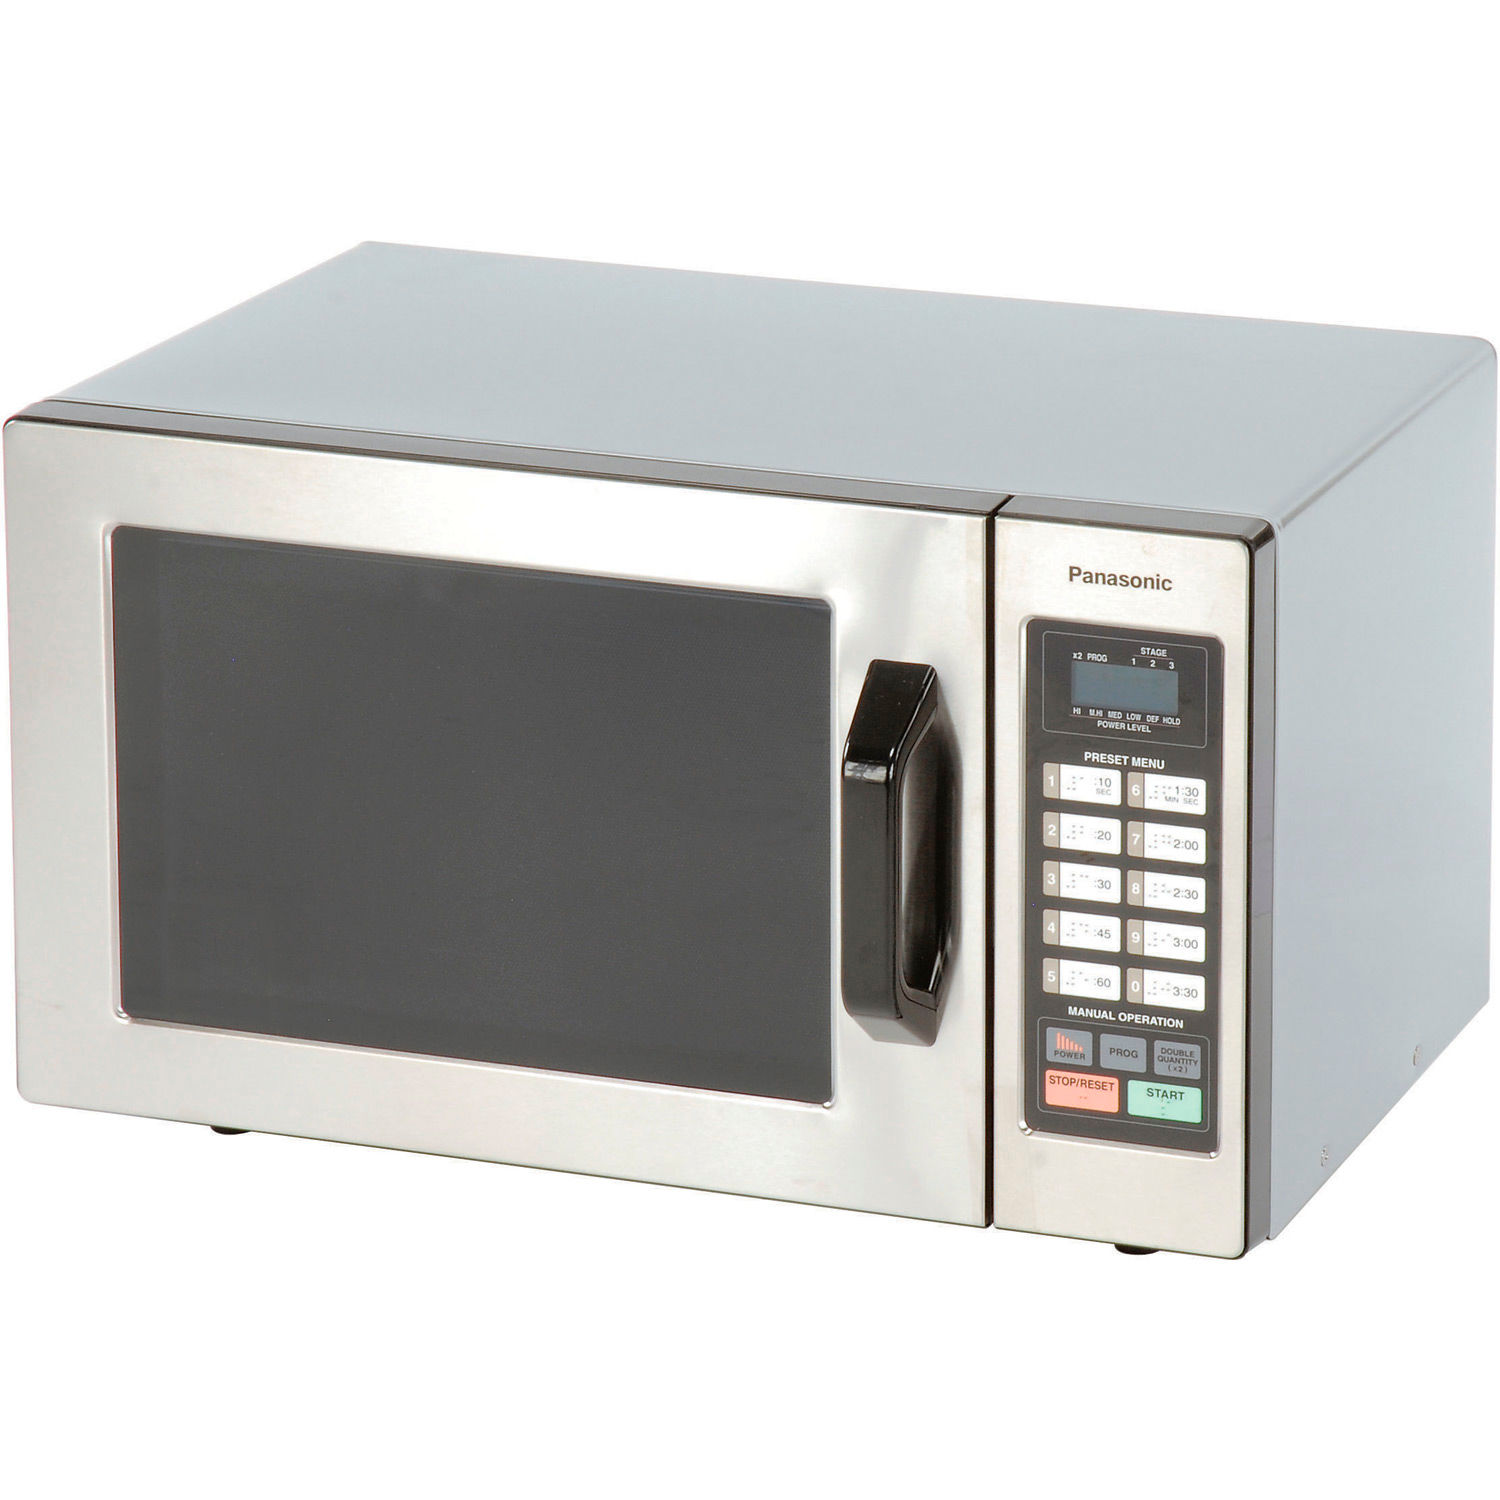 Commercial Liances Microwave Ovens